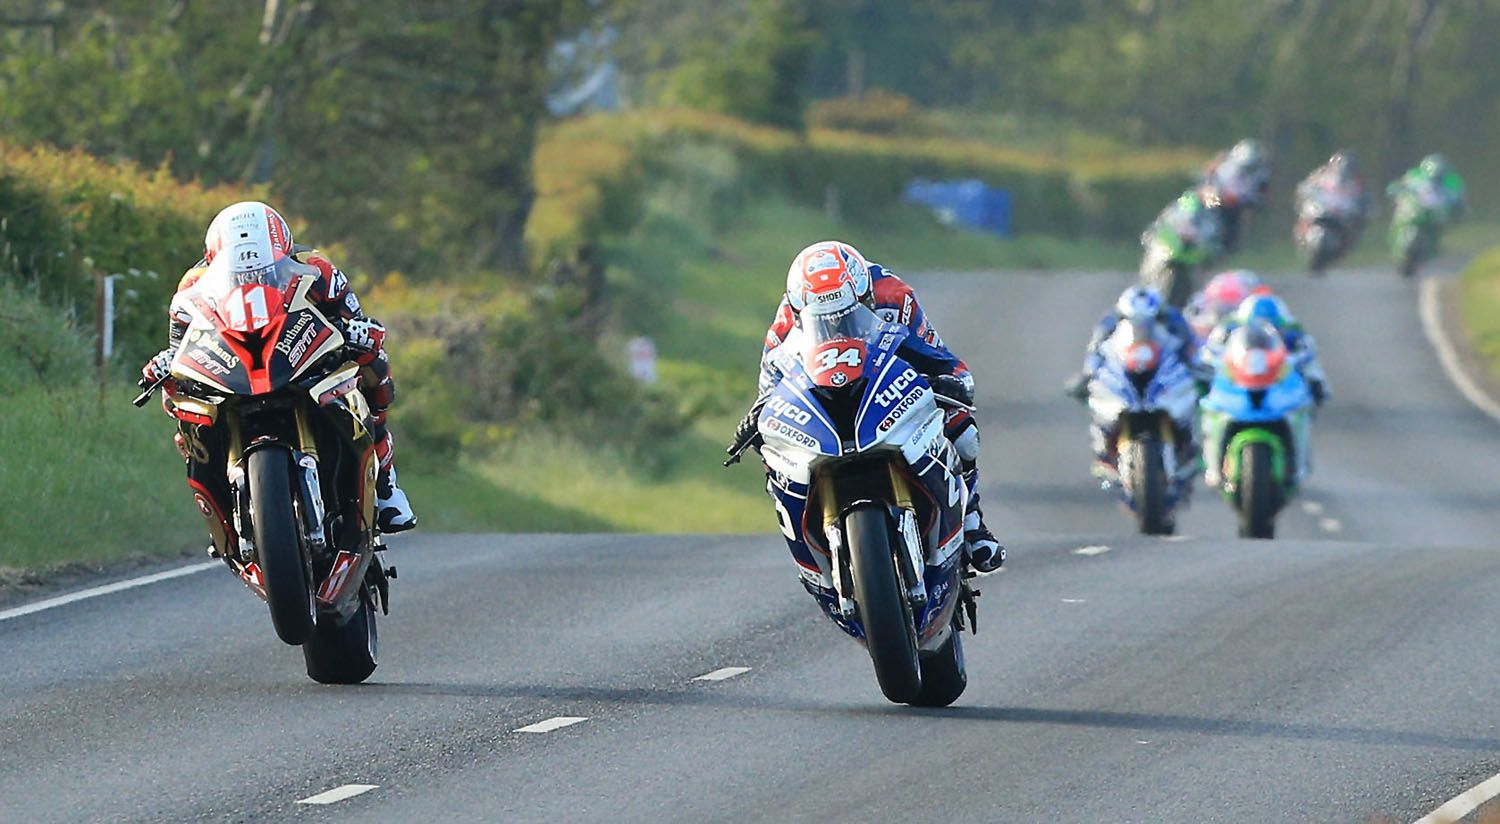 Michael Rutter (11) et Alastair Seeley (34) en superstock ©David Maginnis